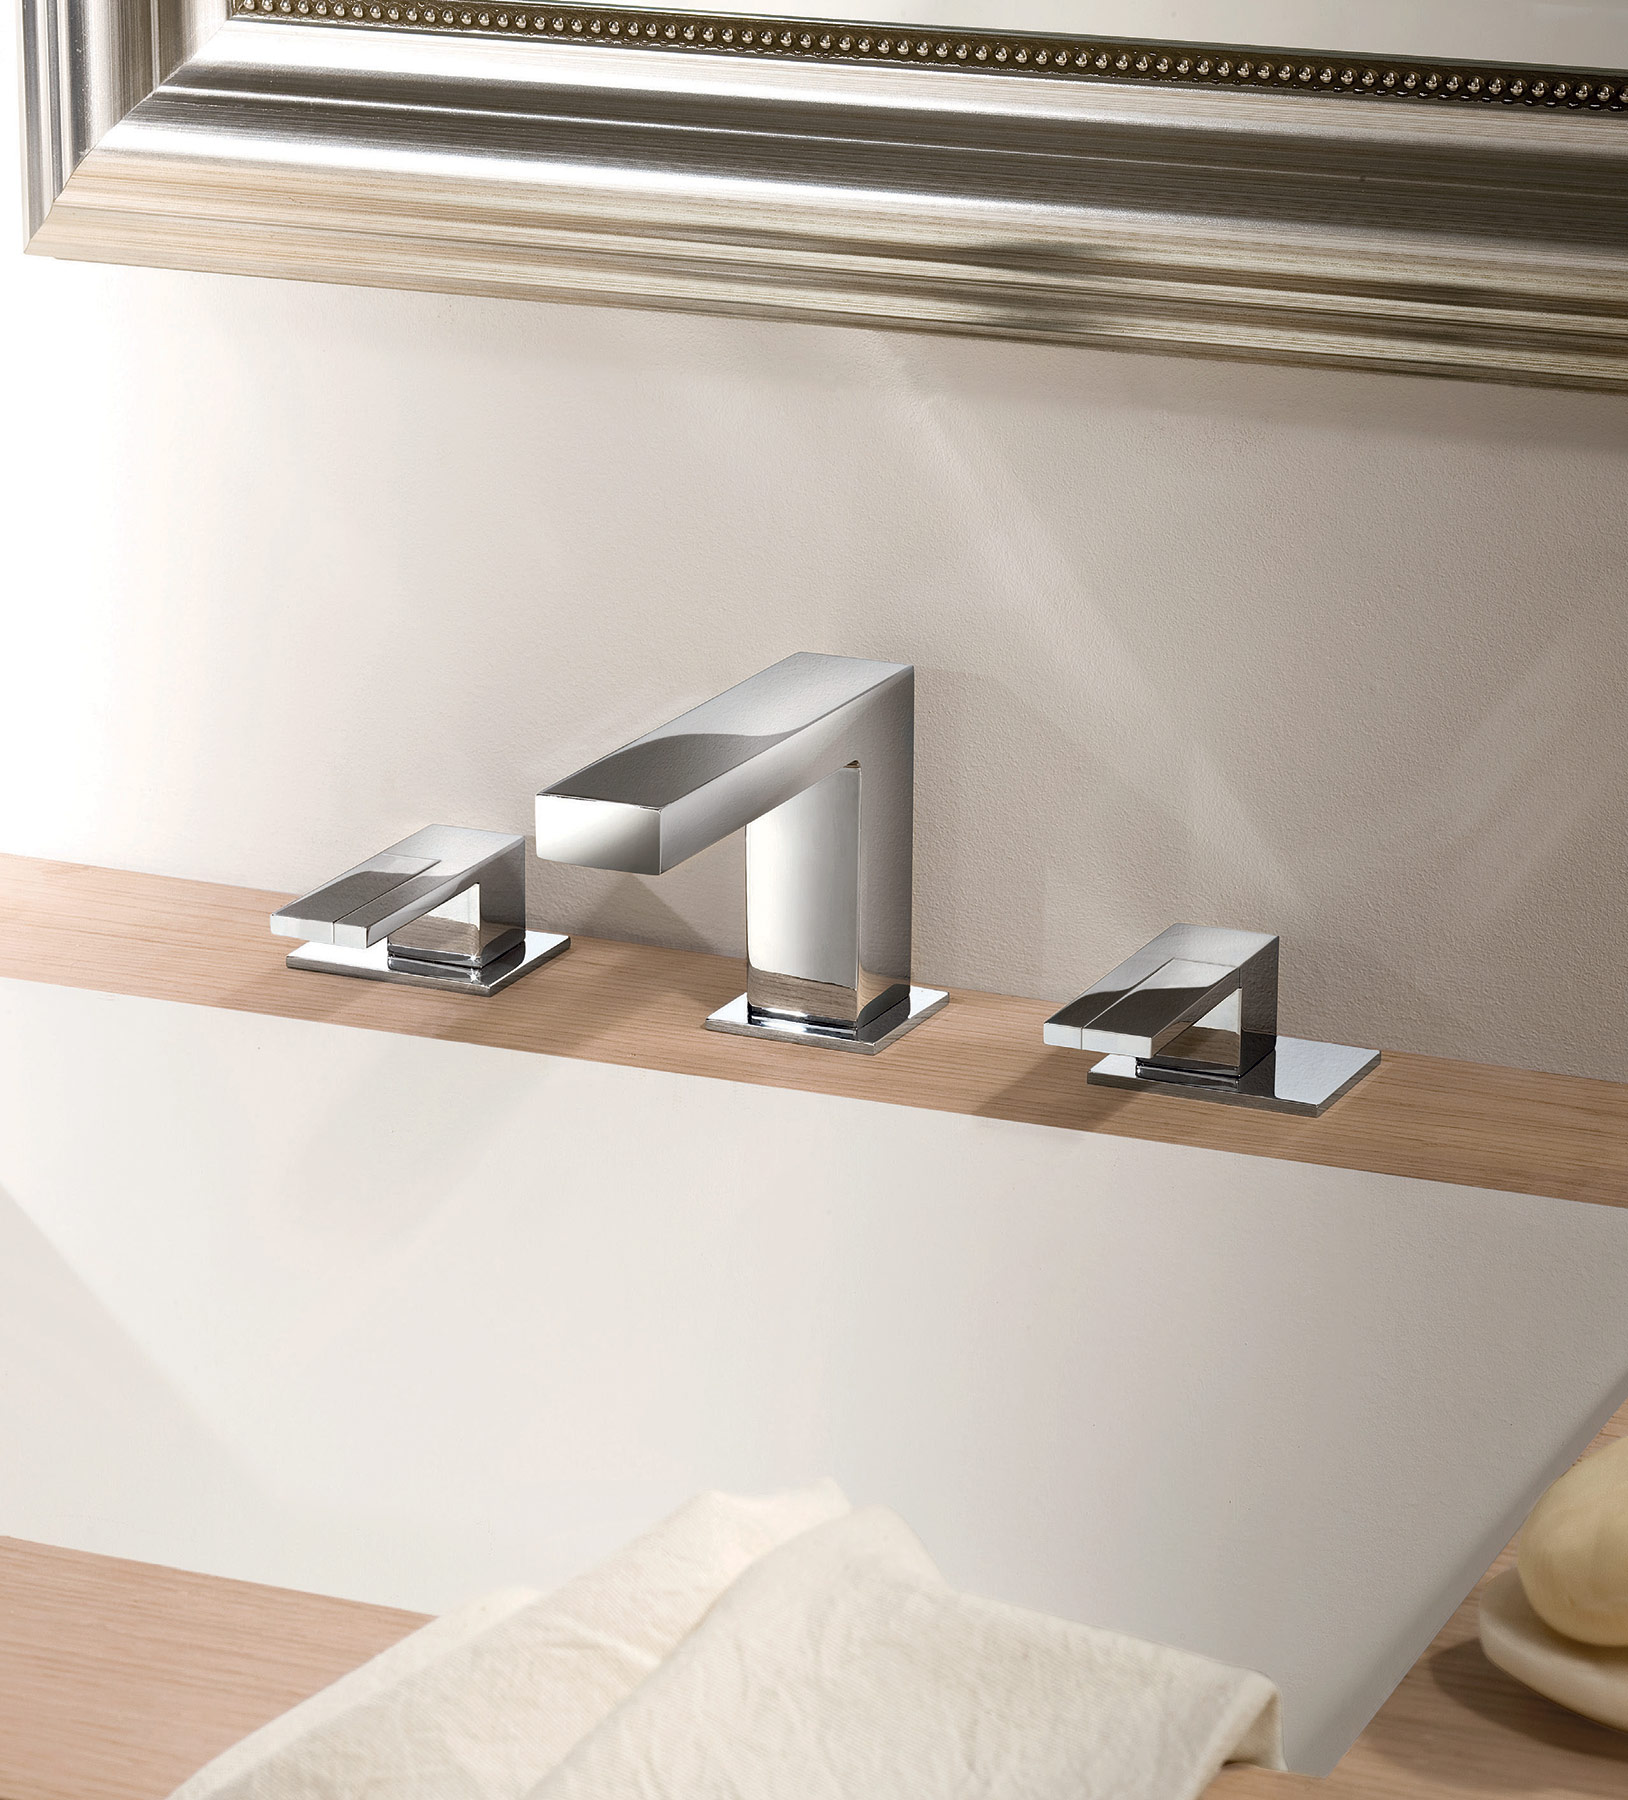 Contemporary Plano Deck Mount Faucet